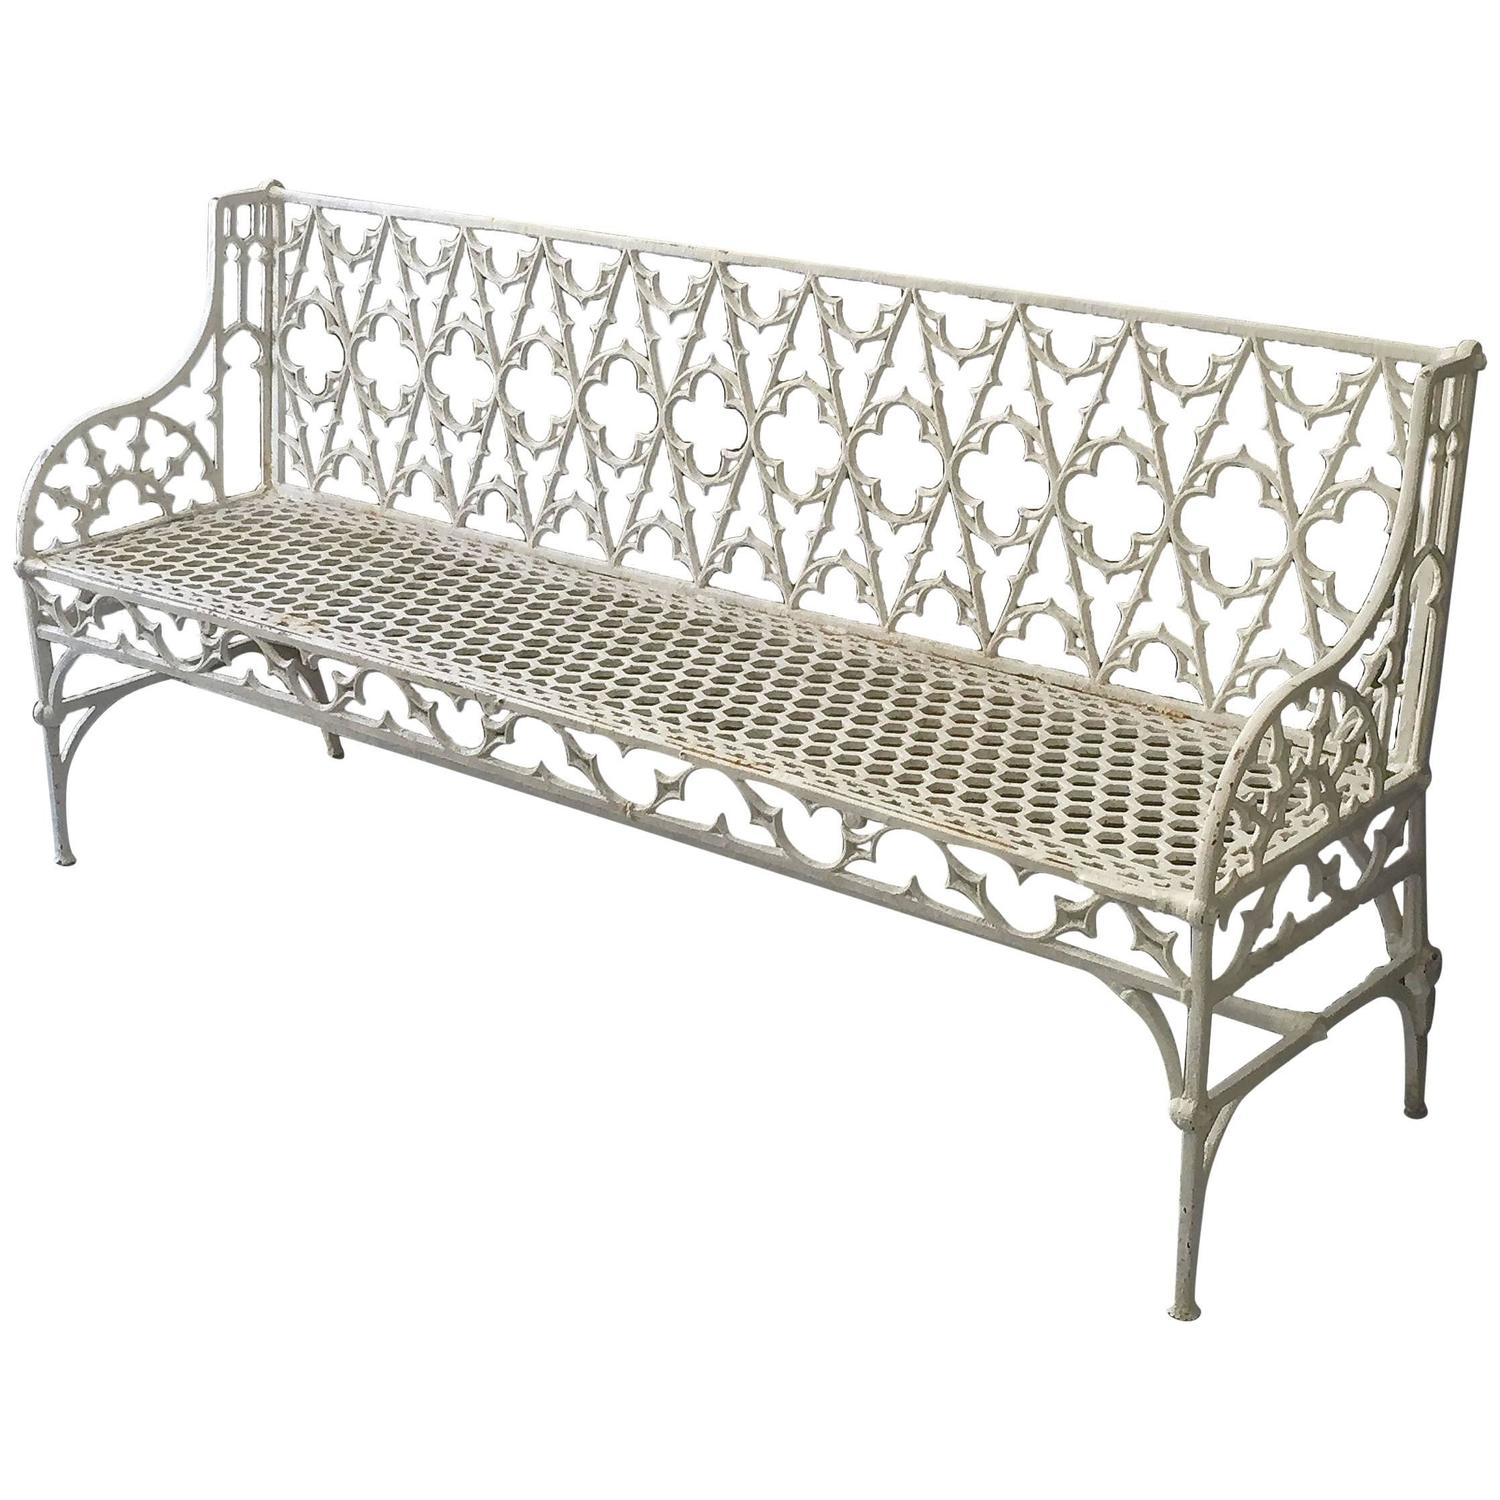 Large French Val Dosne Cast Iron Garden Bench at 1stdibs